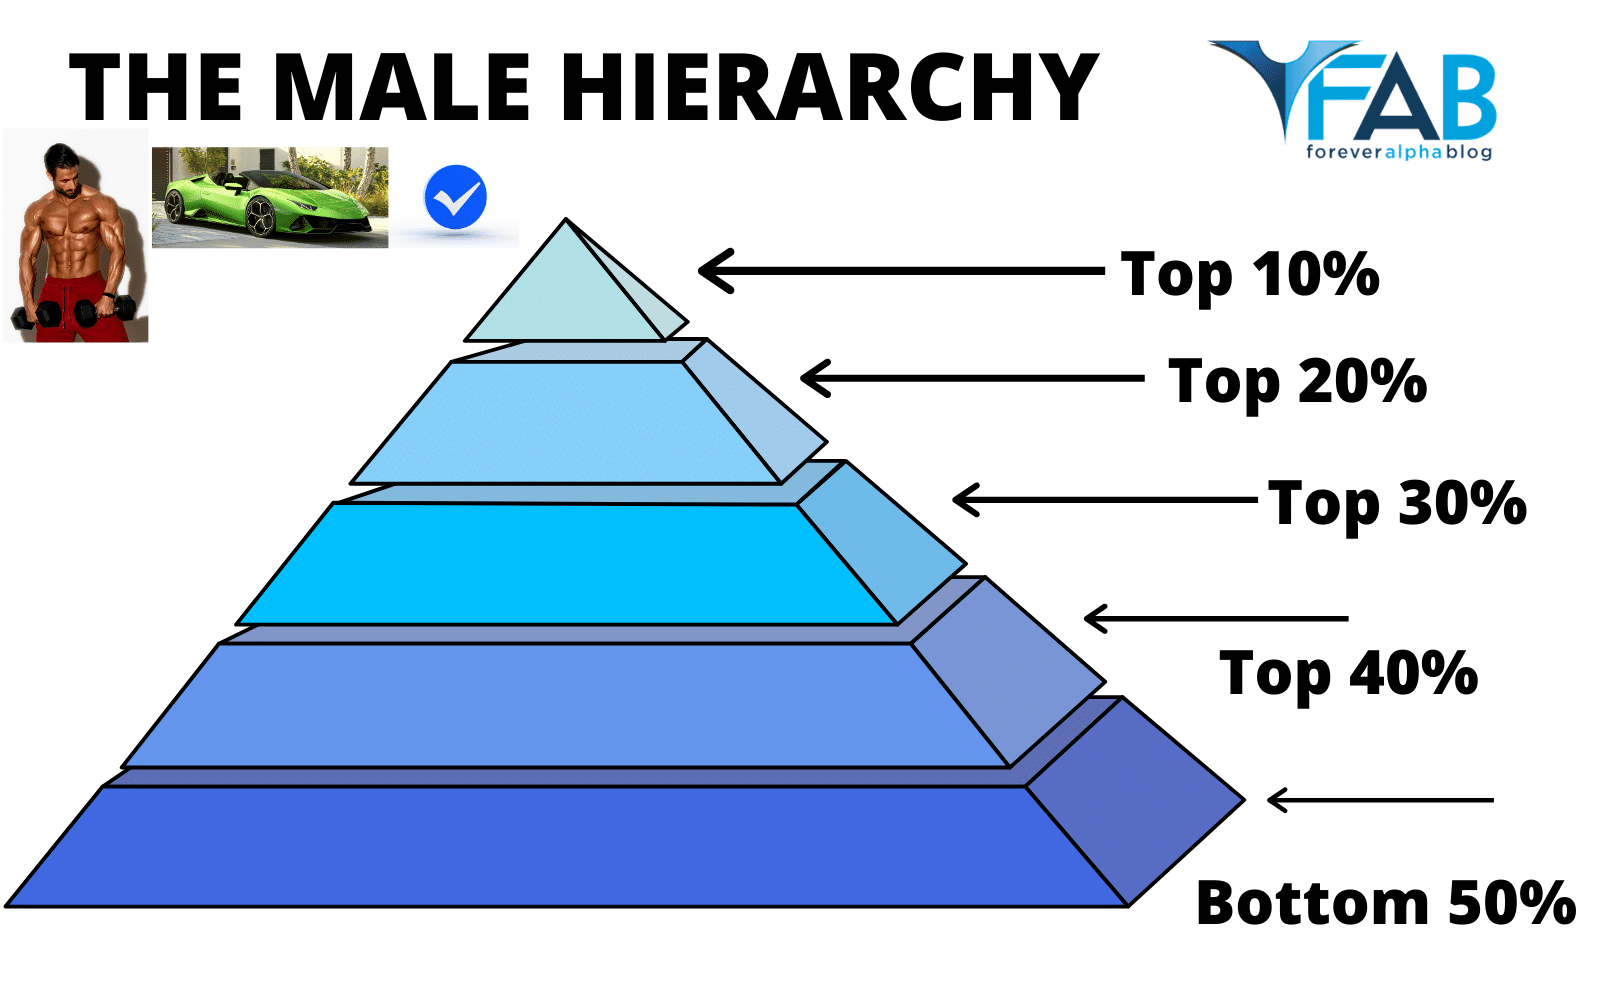 The Male Hierarchy